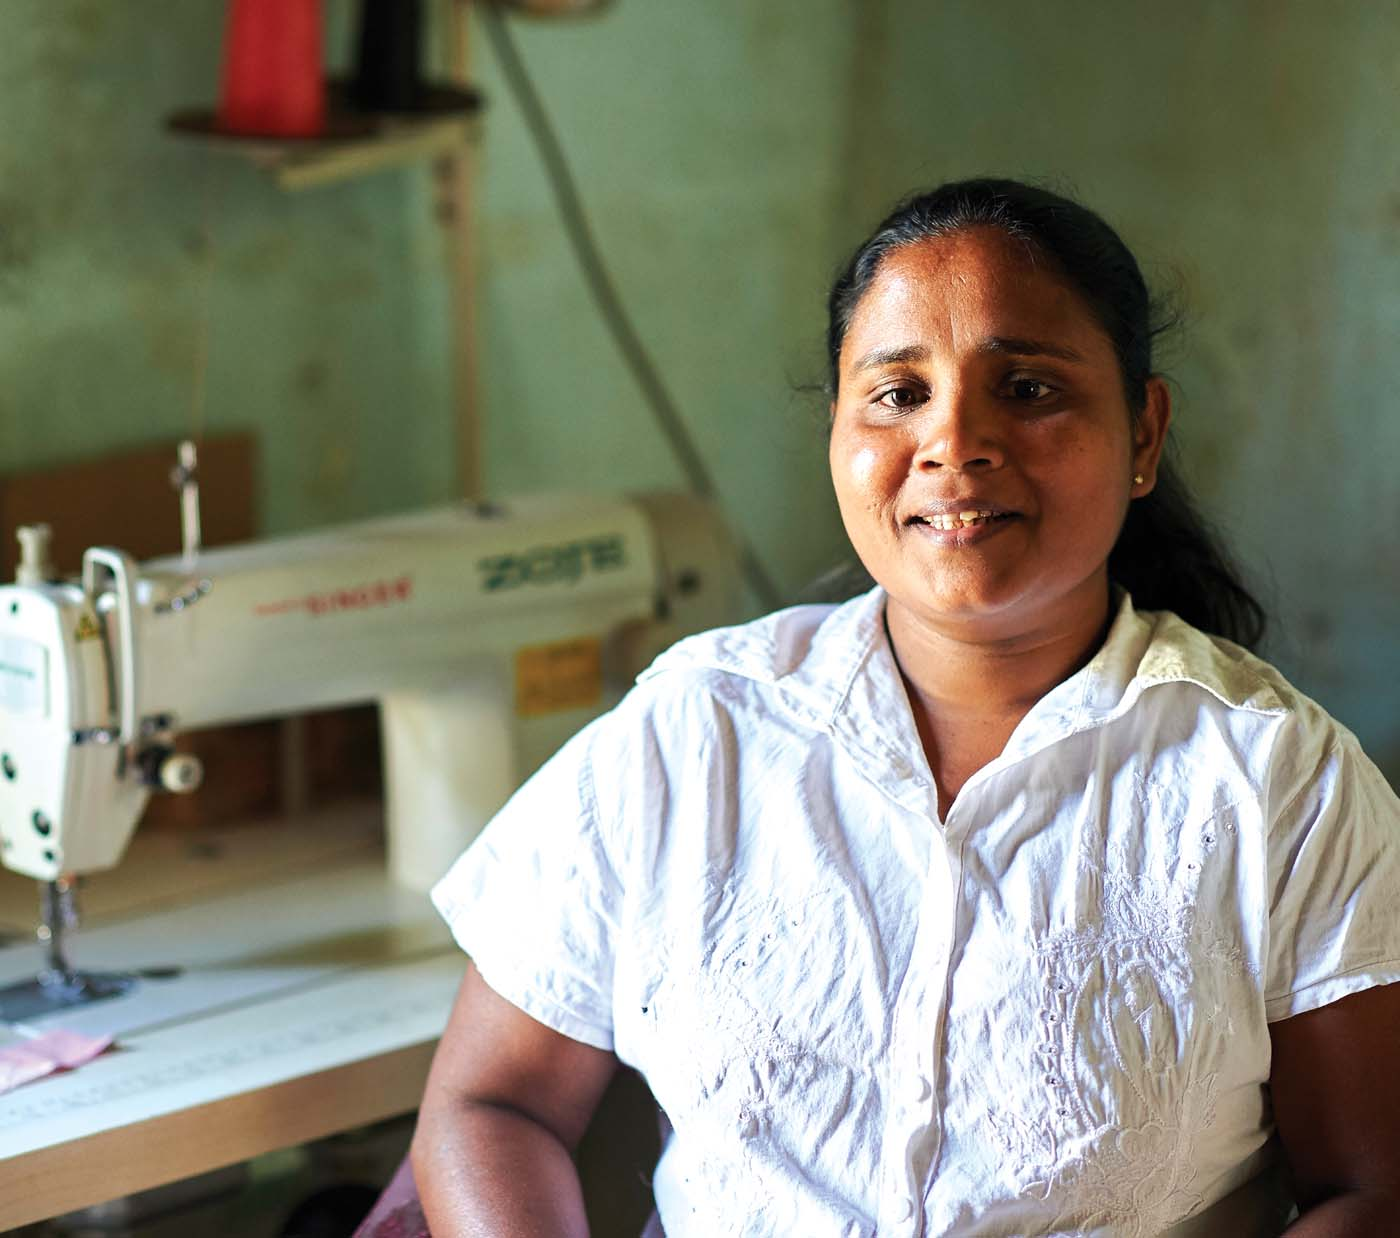 The MJF Charitable Foundation's Prison Reform and Integrate Programme helped Rupa, a mother and wife, transform herself after being released from the correctional system. Today, she leads a productive life and is a respected seamstress in Kuruvita.